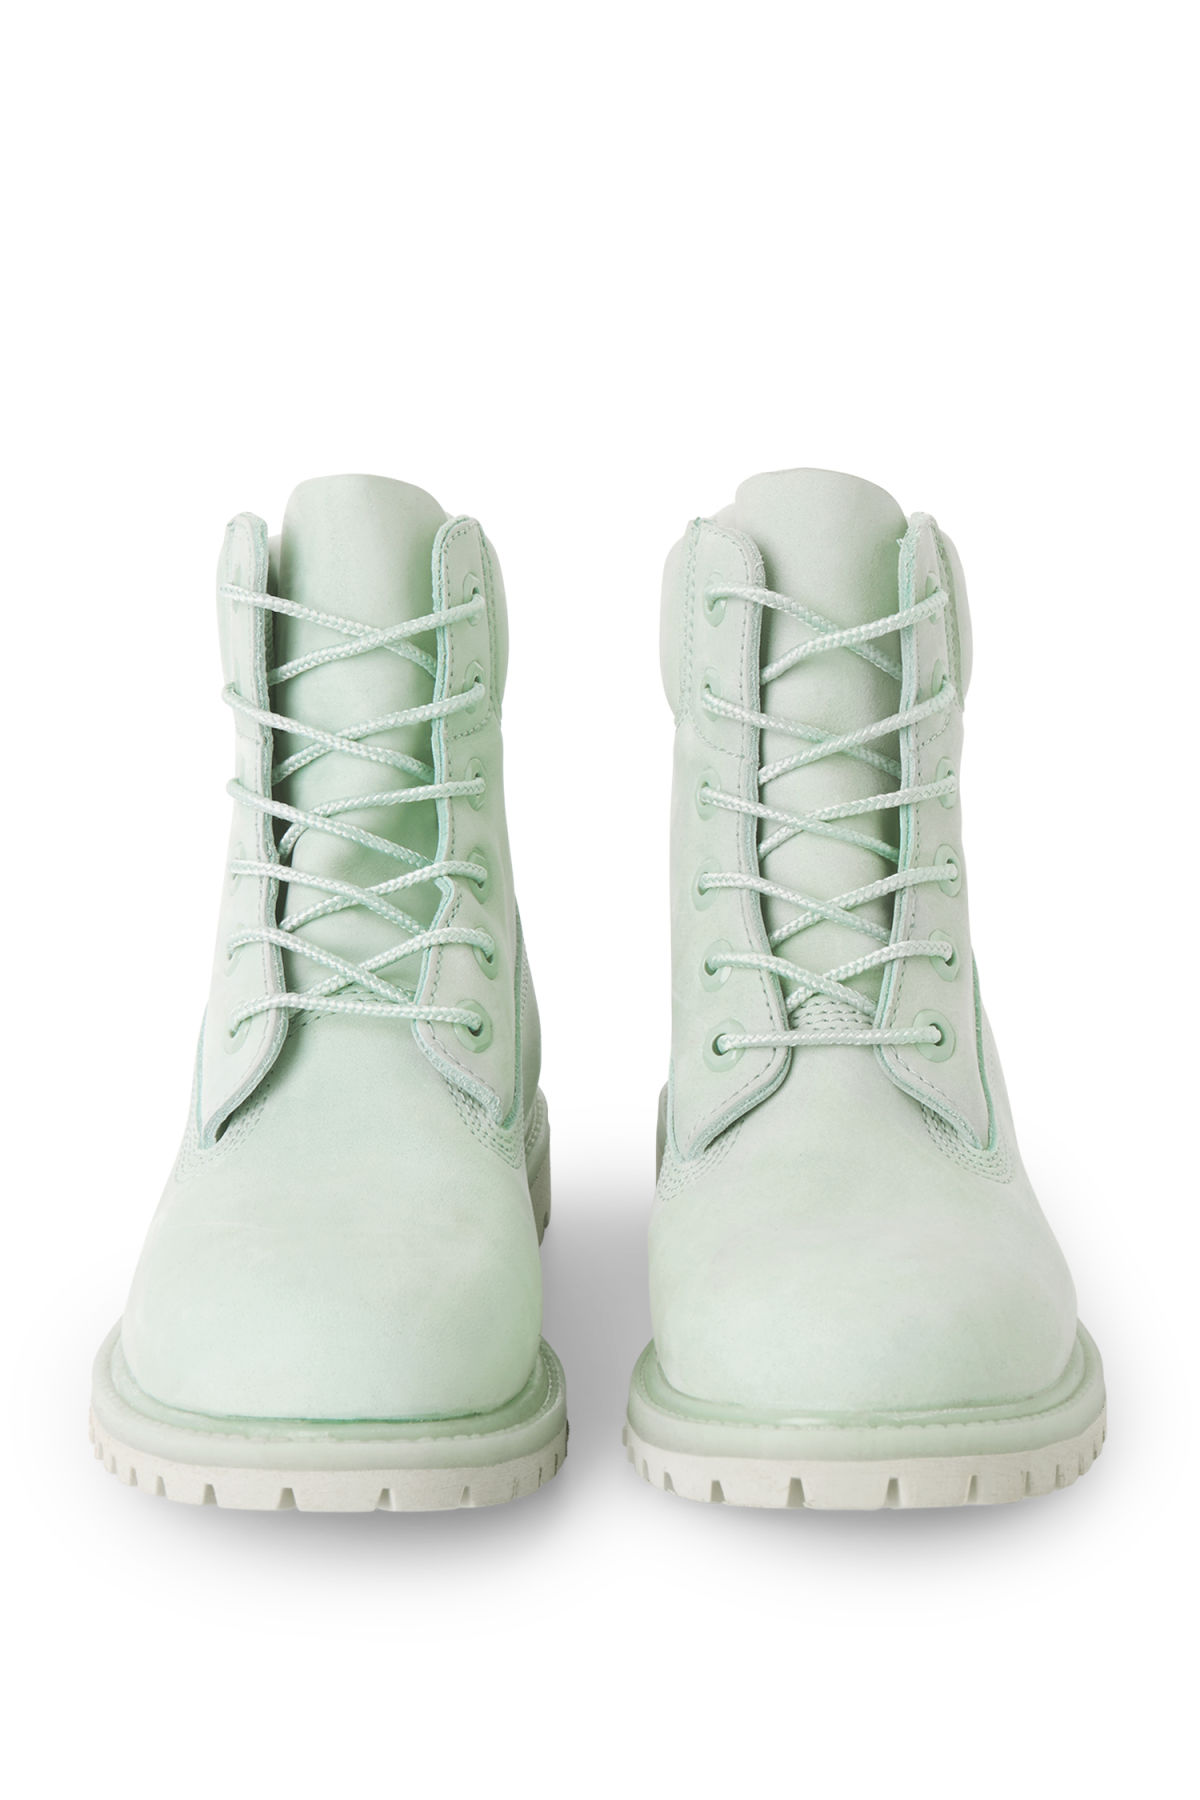 Weekday Icon 6-inch Premium Boot - Green Outlet Clearance Store Discount High Quality Cheap Purchase Cheap Real Authentic rALn8